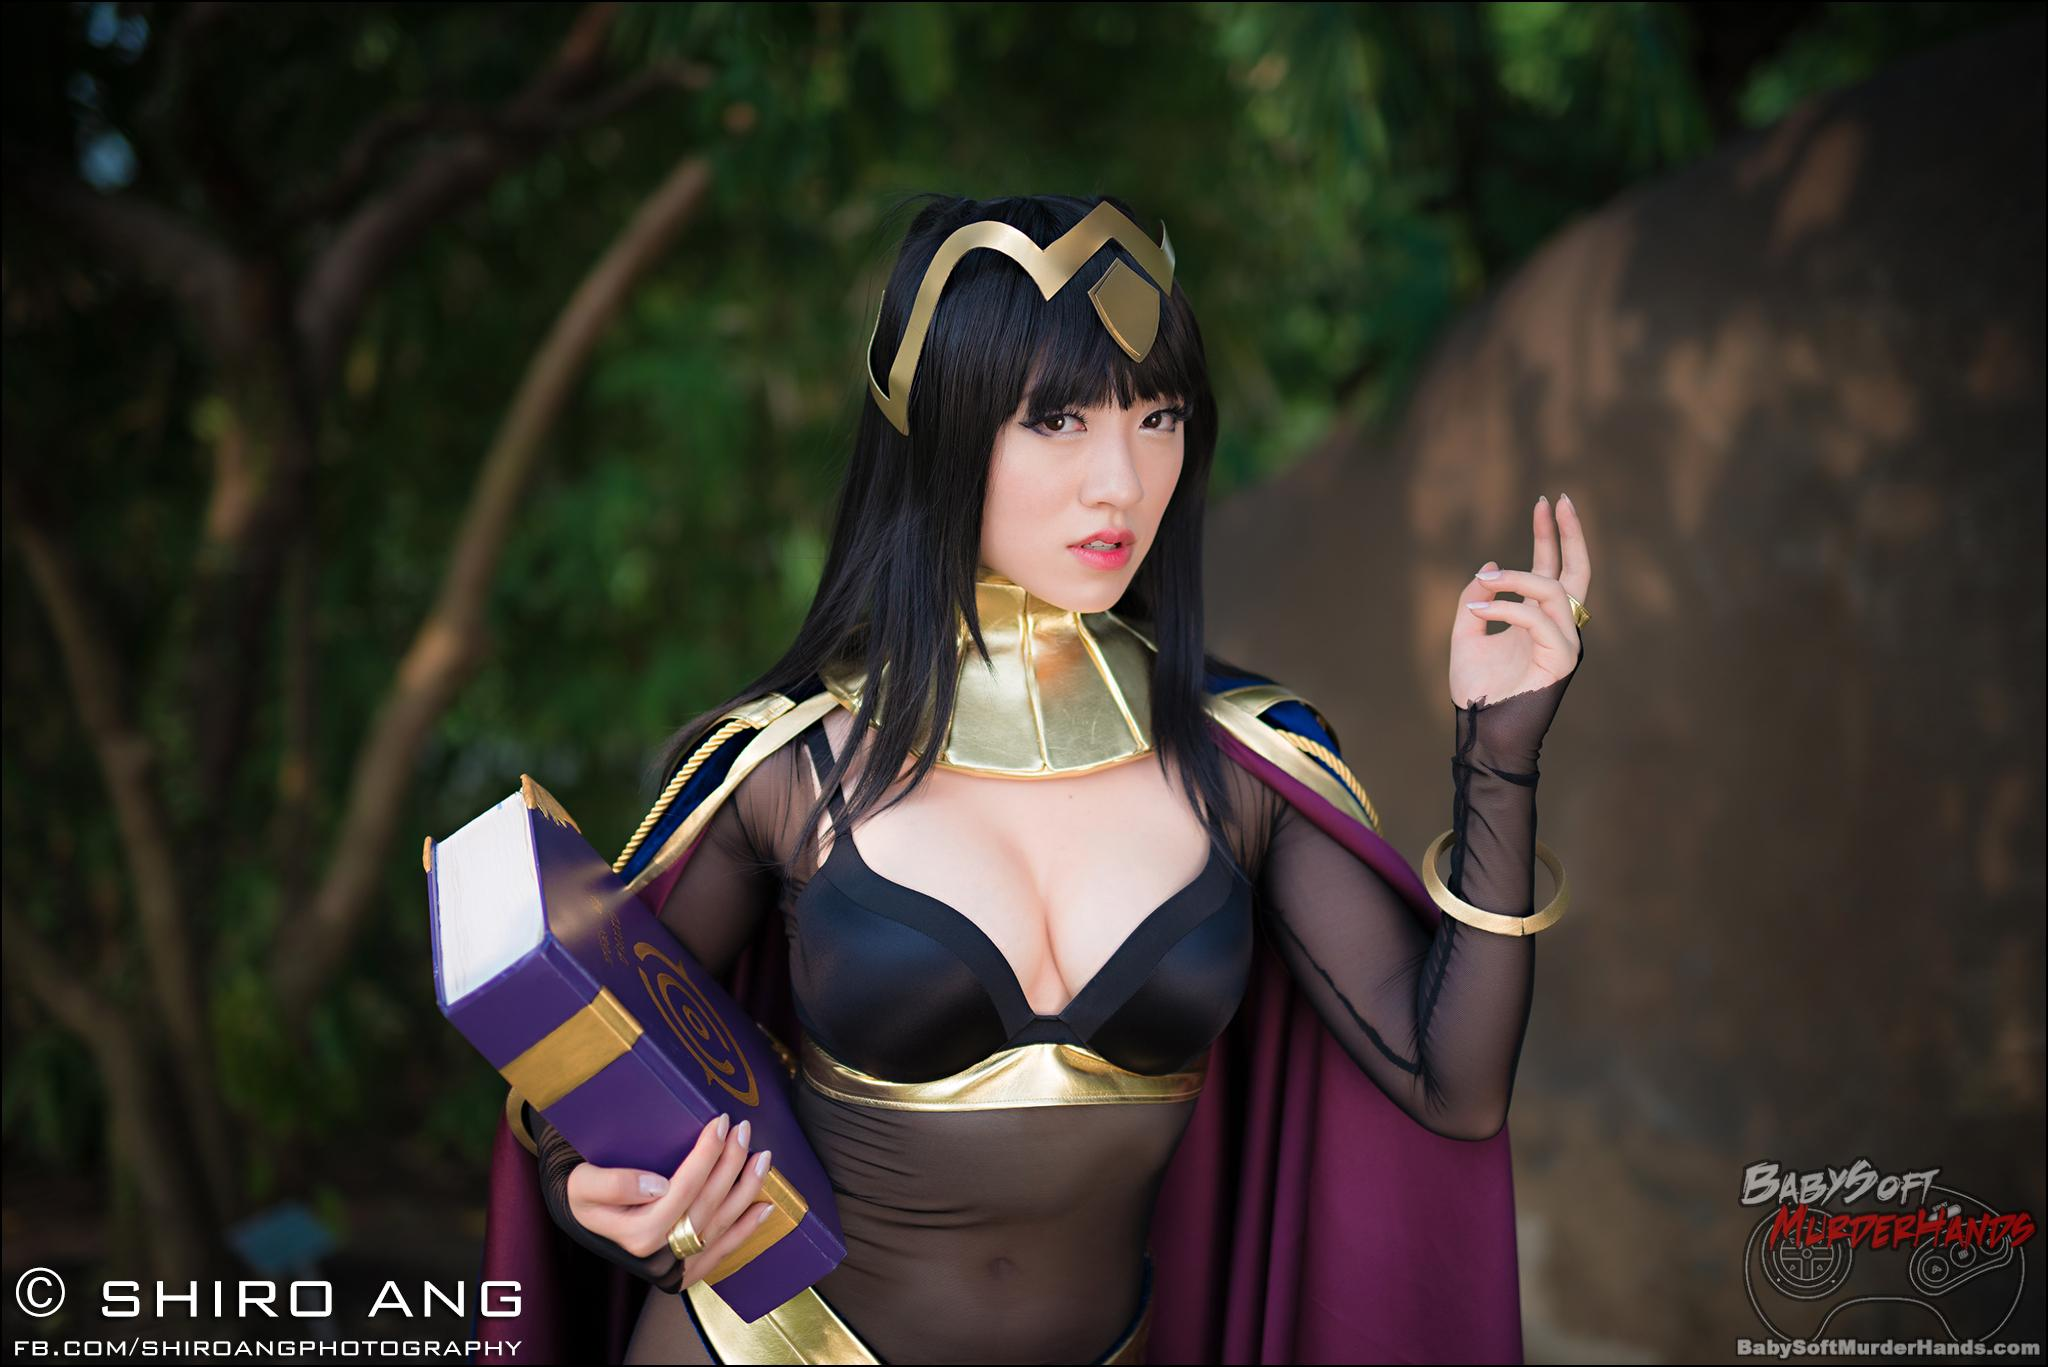 Tharja cosplay from Fire Emblem: Awakening